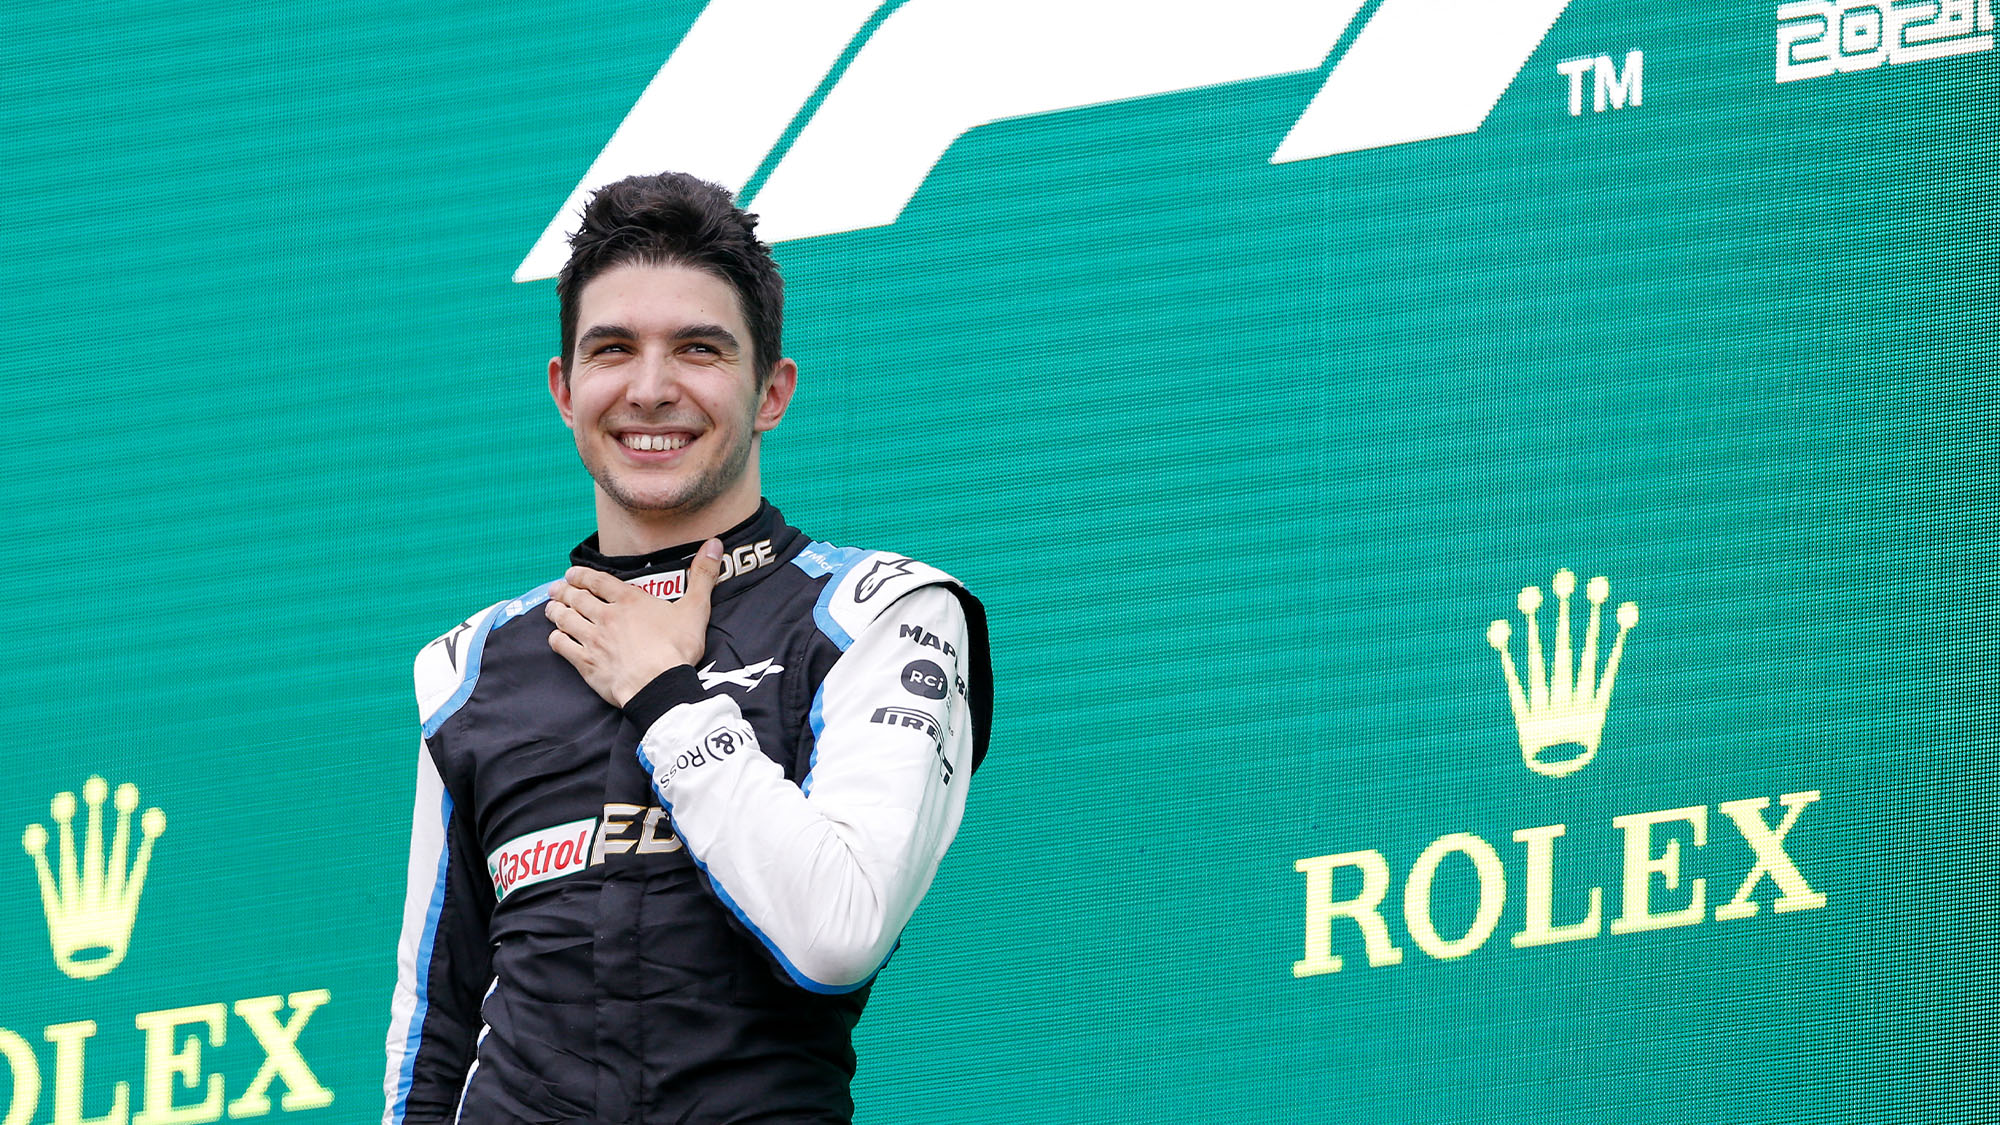 podium OCON Esteban (fra), Alpine F1 A521, portrait during the Formula 1 Magyar Nagydij 2021, Hungarian Grand Prix, 11th round of the 2021 FIA Formula One World Championship from July 30 to August 1, 2021 on the Hungaroring, in Mogyorod, near Budapest, Hungary - Photo DPPI